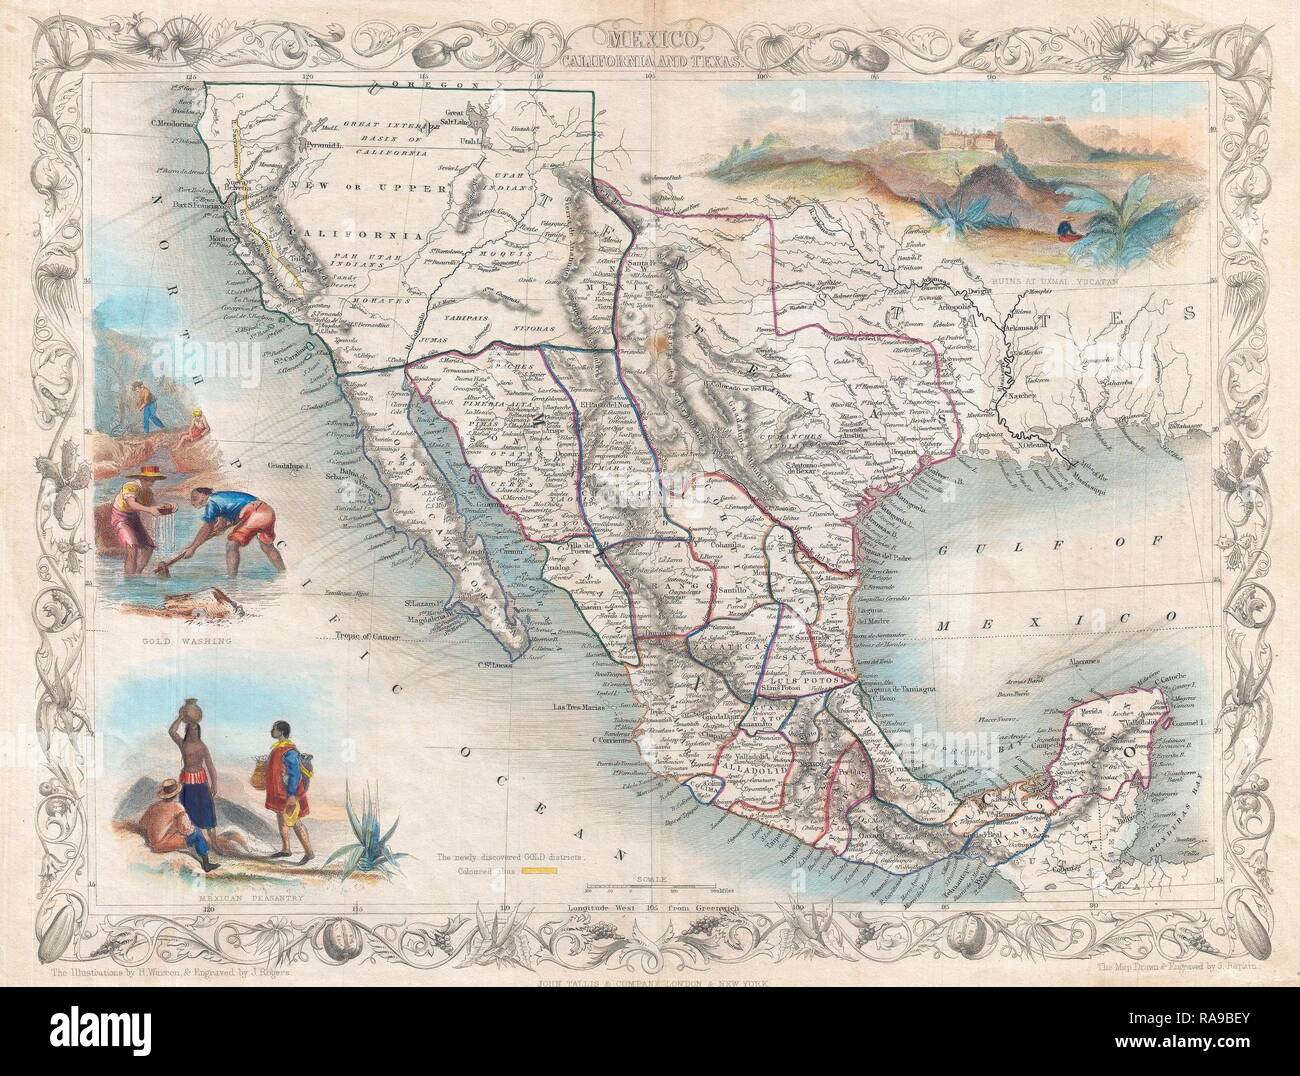 1851, Tallis Map of Mexico, Texas, and California. Reimagined by Gibon. Classic art with a modern twist reimagined - Stock Image